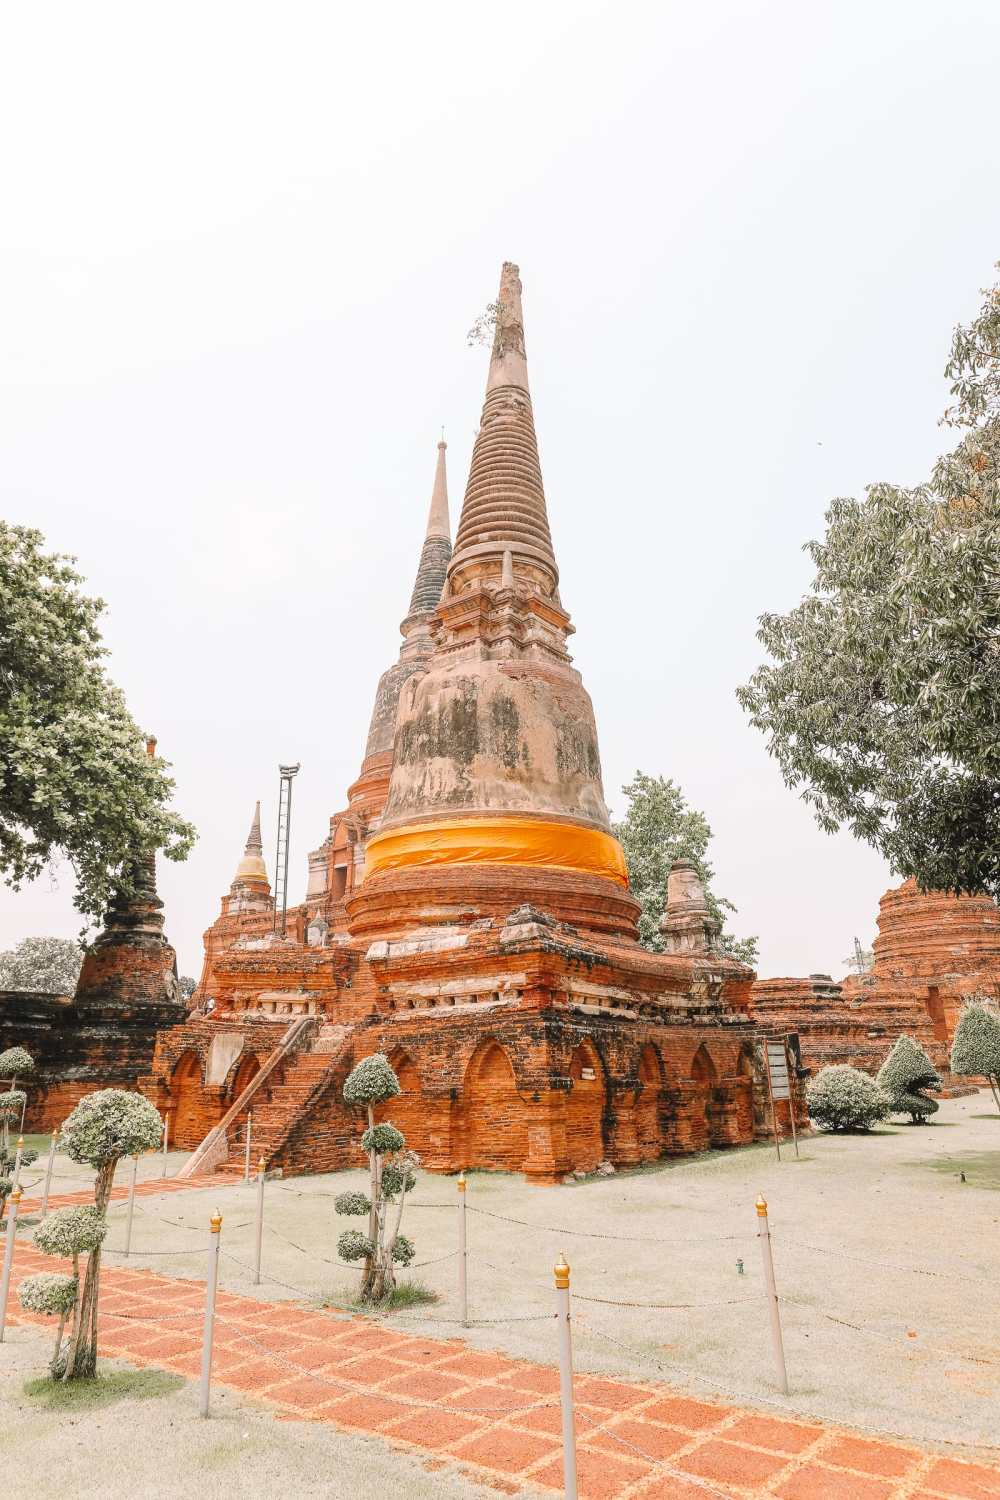 Inside The Ancient Kingdom Of Ayutthaya, Thailand (1)